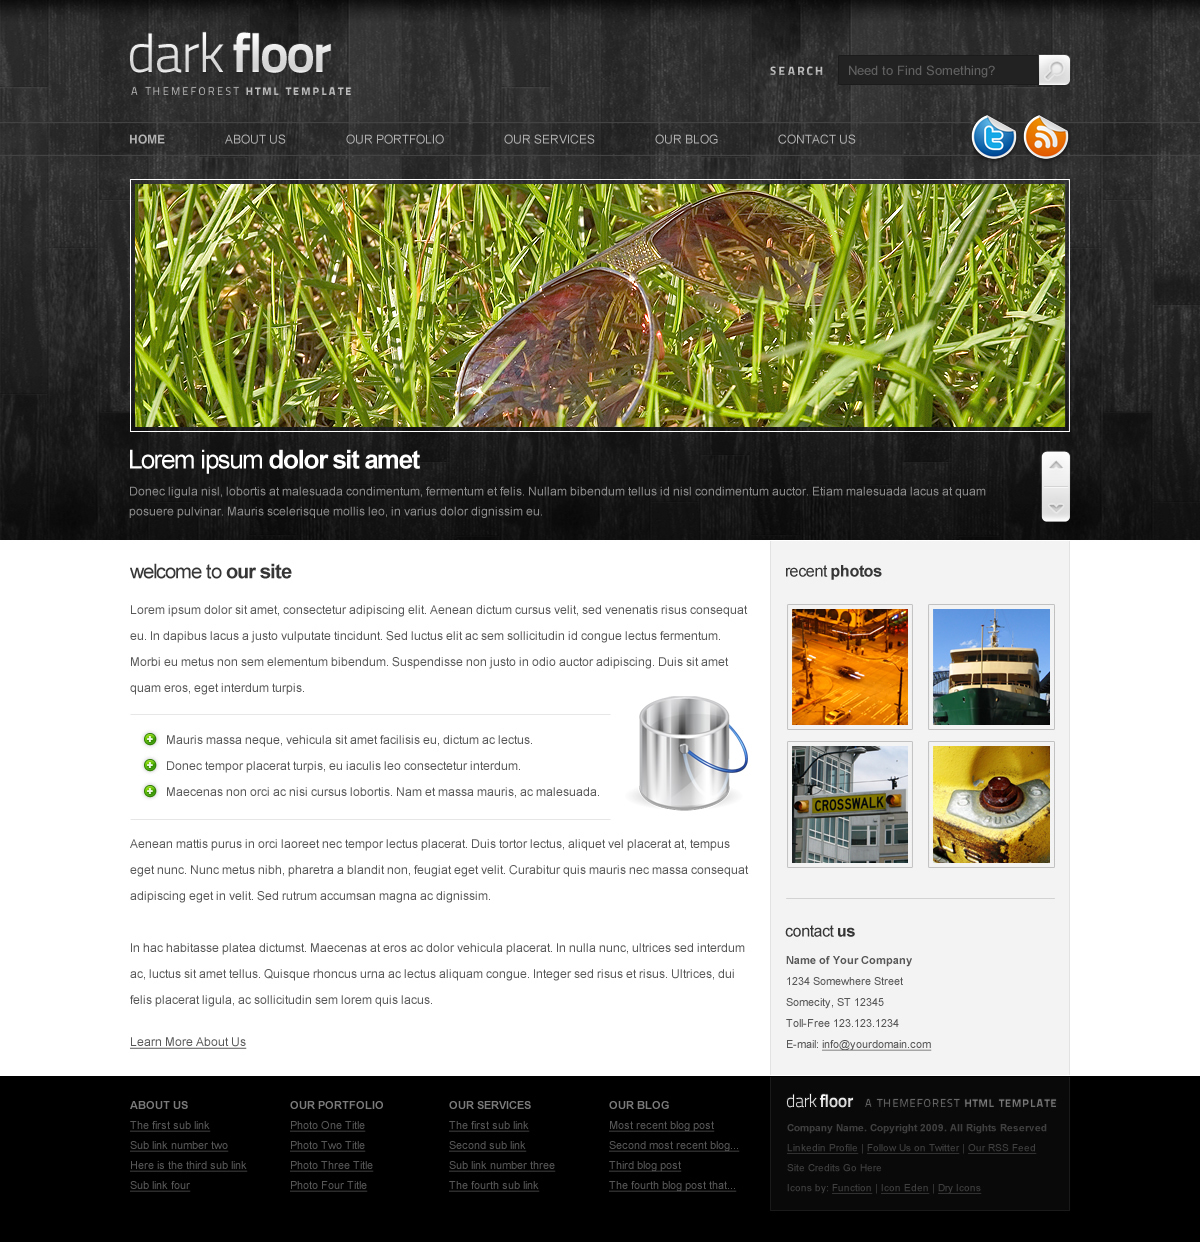 Dark Floor HTML Template - 6 Pages, 7 Colors